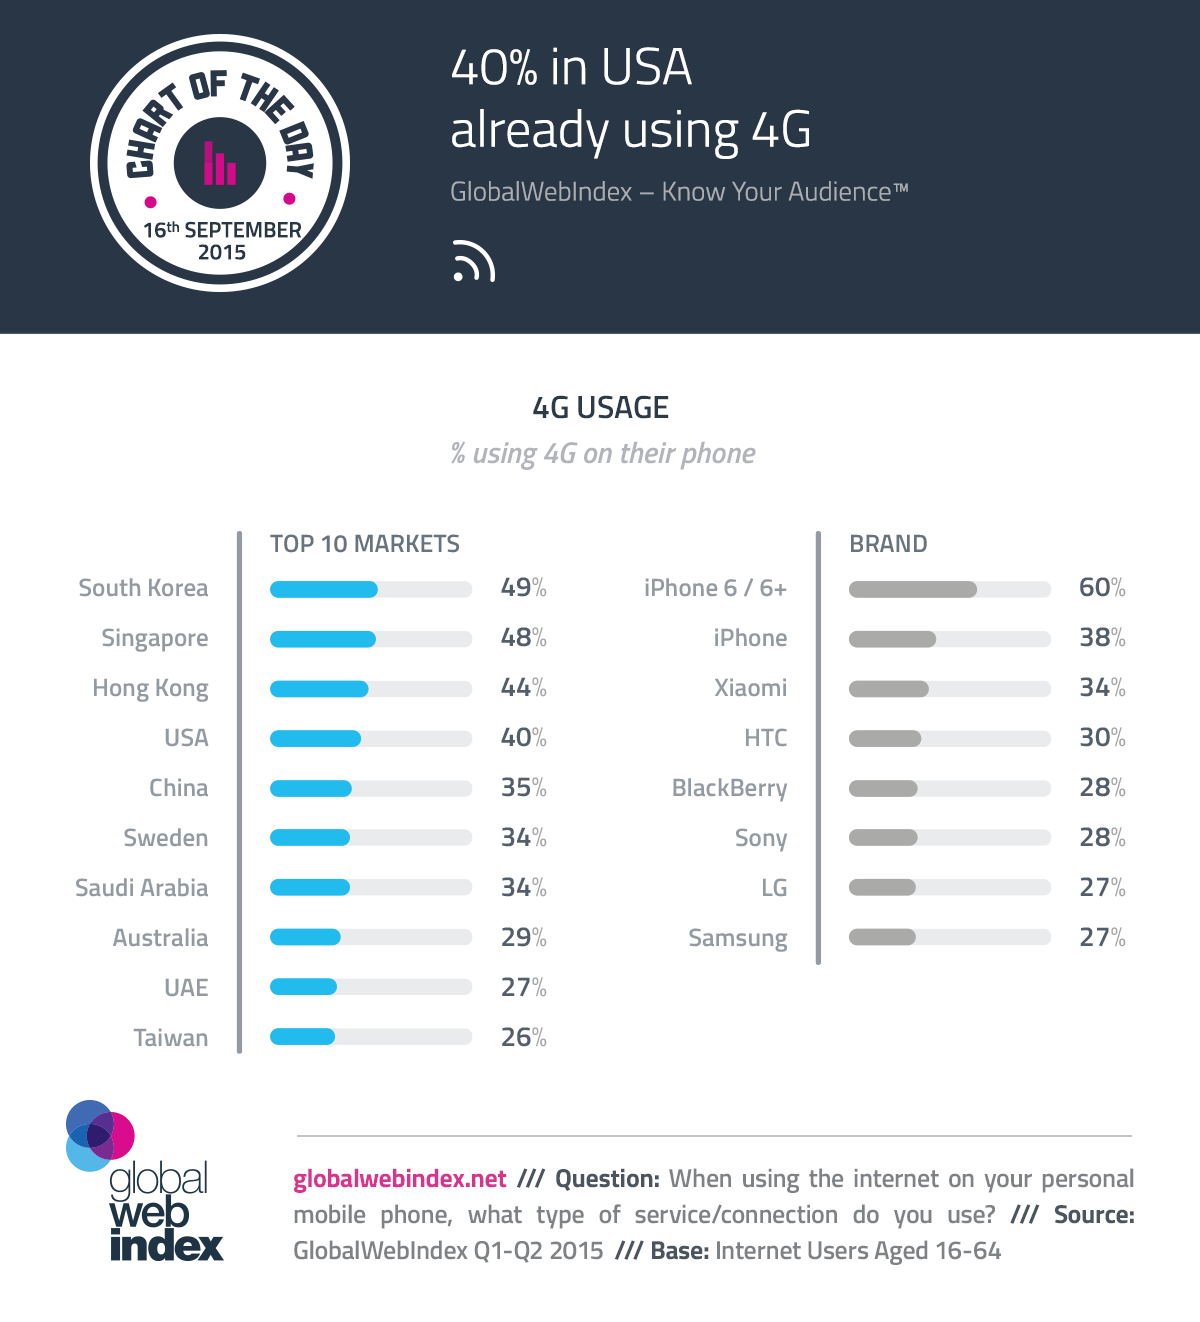 16th-Sep-2015-40-in-USA-Already-Using-4G